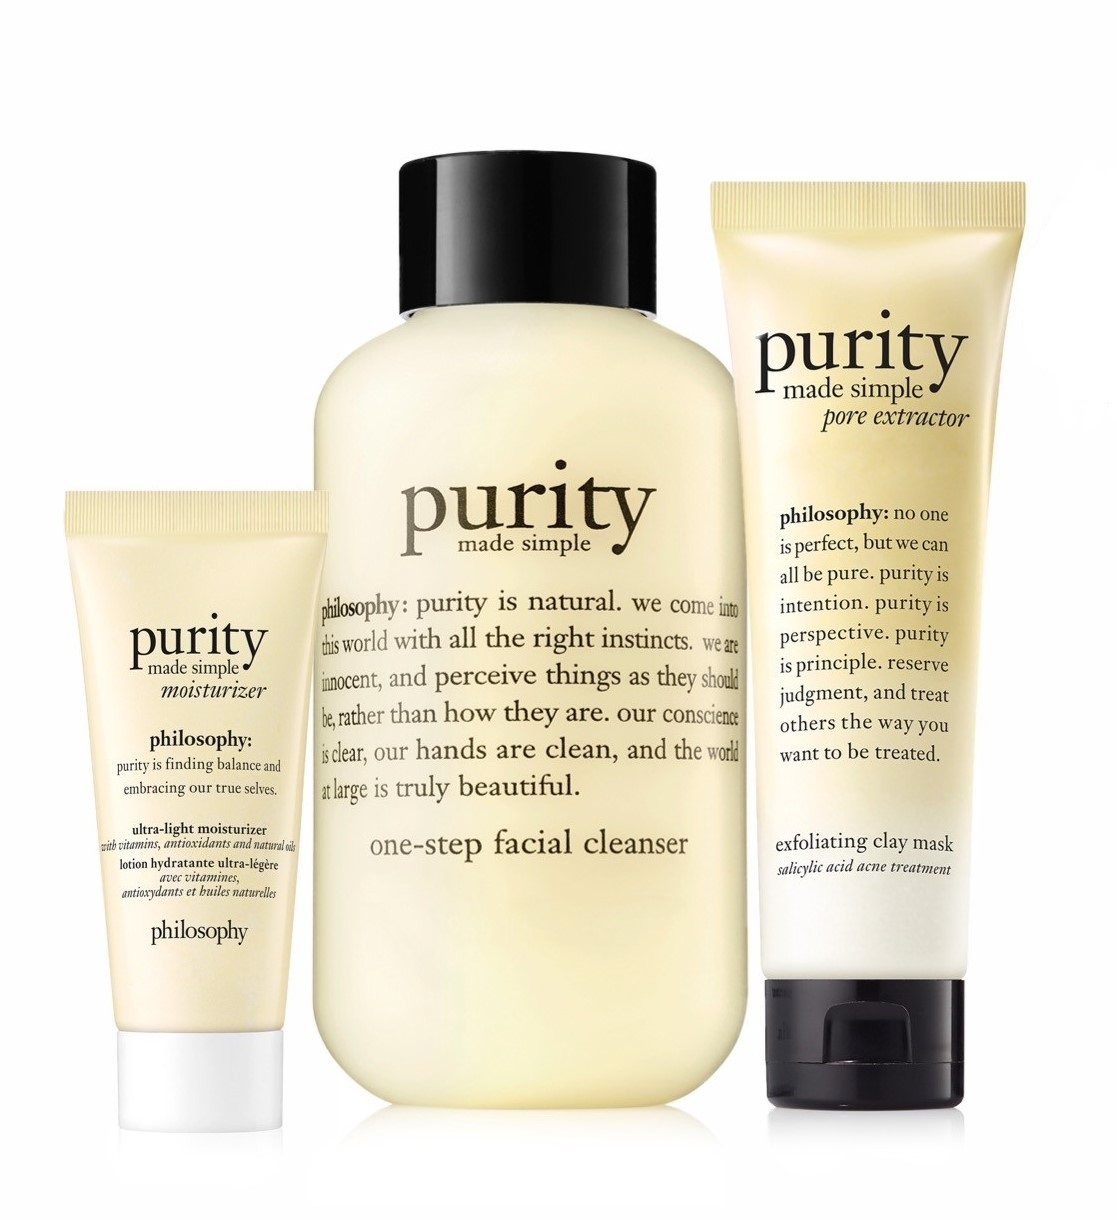 purity party prep purity made simple cleanser, pore extractor mask, & moisturizer